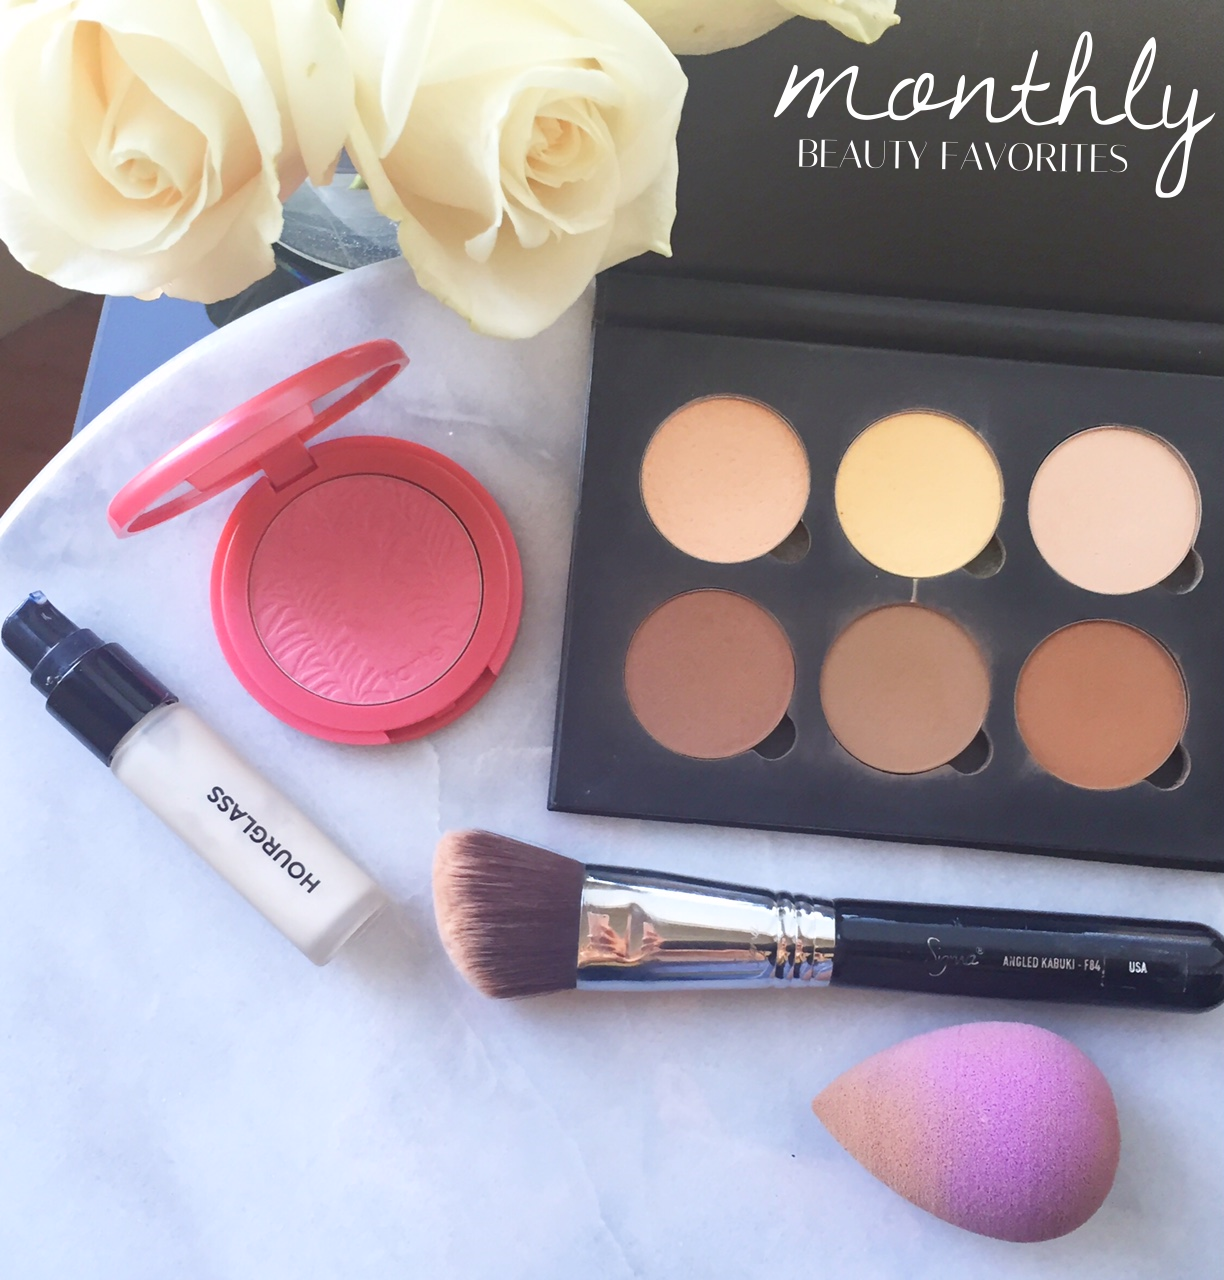 Monthly Beauty Favorites | http://thefourthreads.com